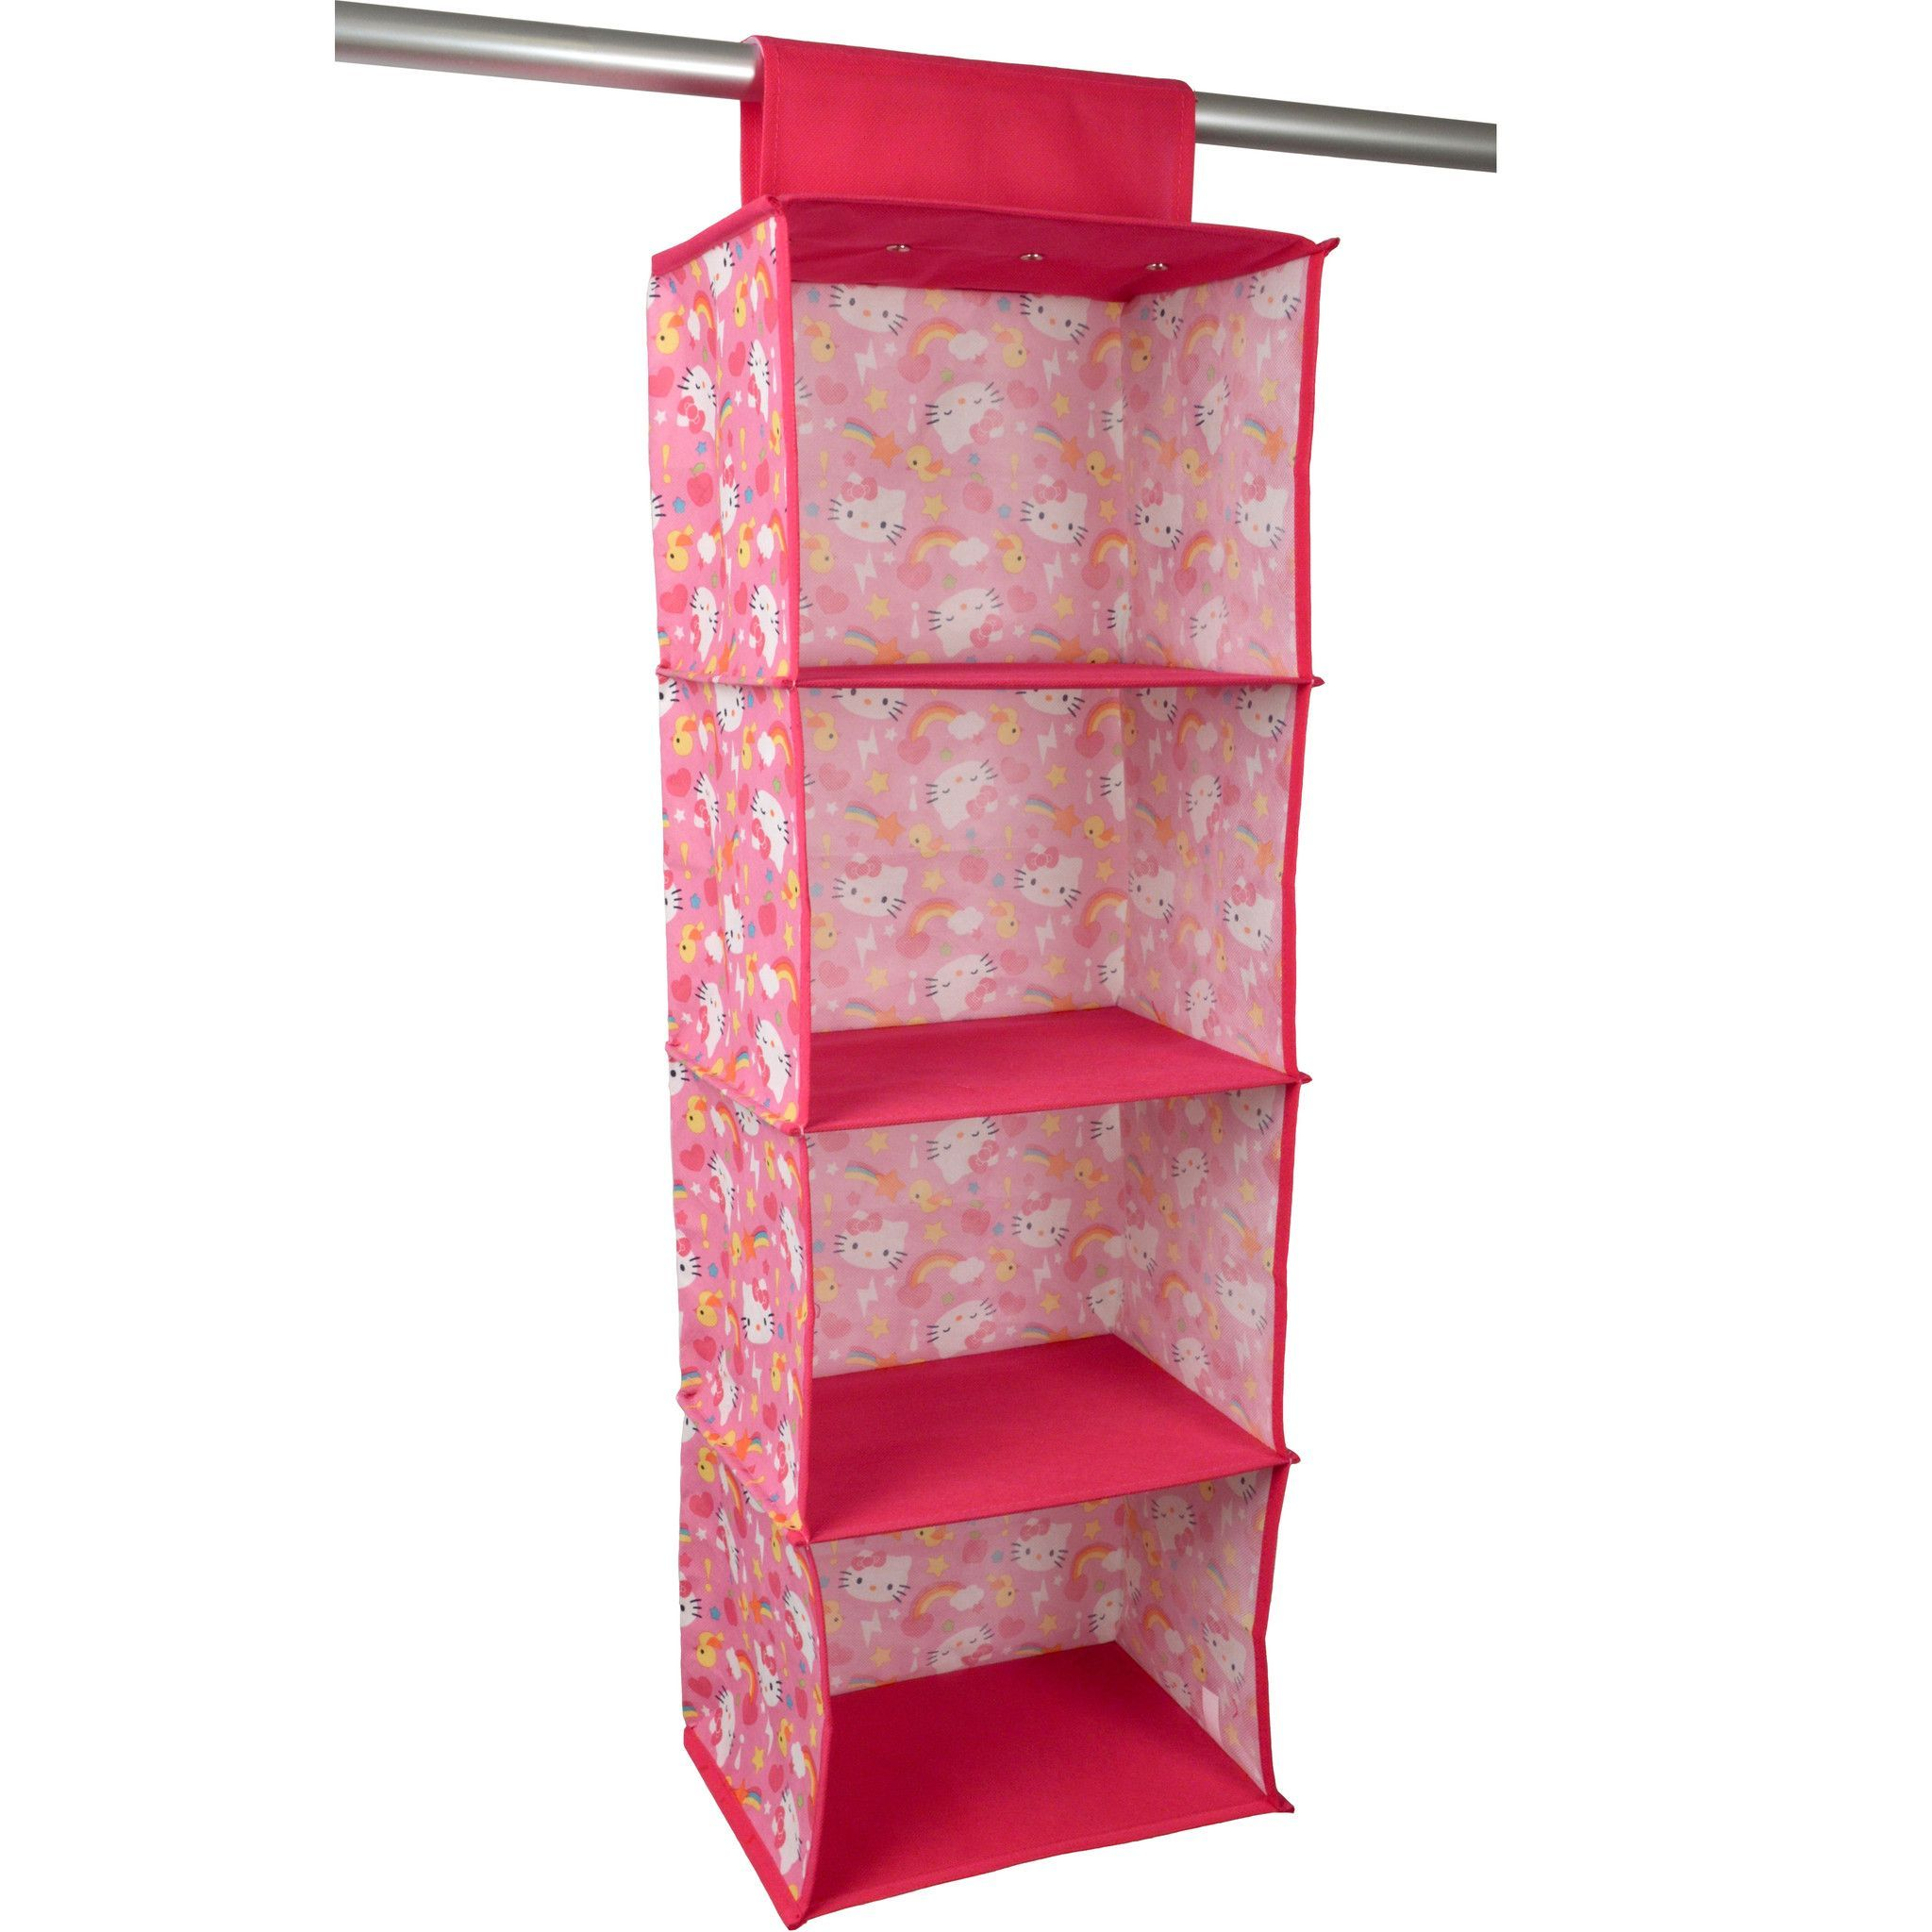 wardrobe storage with walk drawers custom solutions in closet clothes systems hanging organizer design furniture